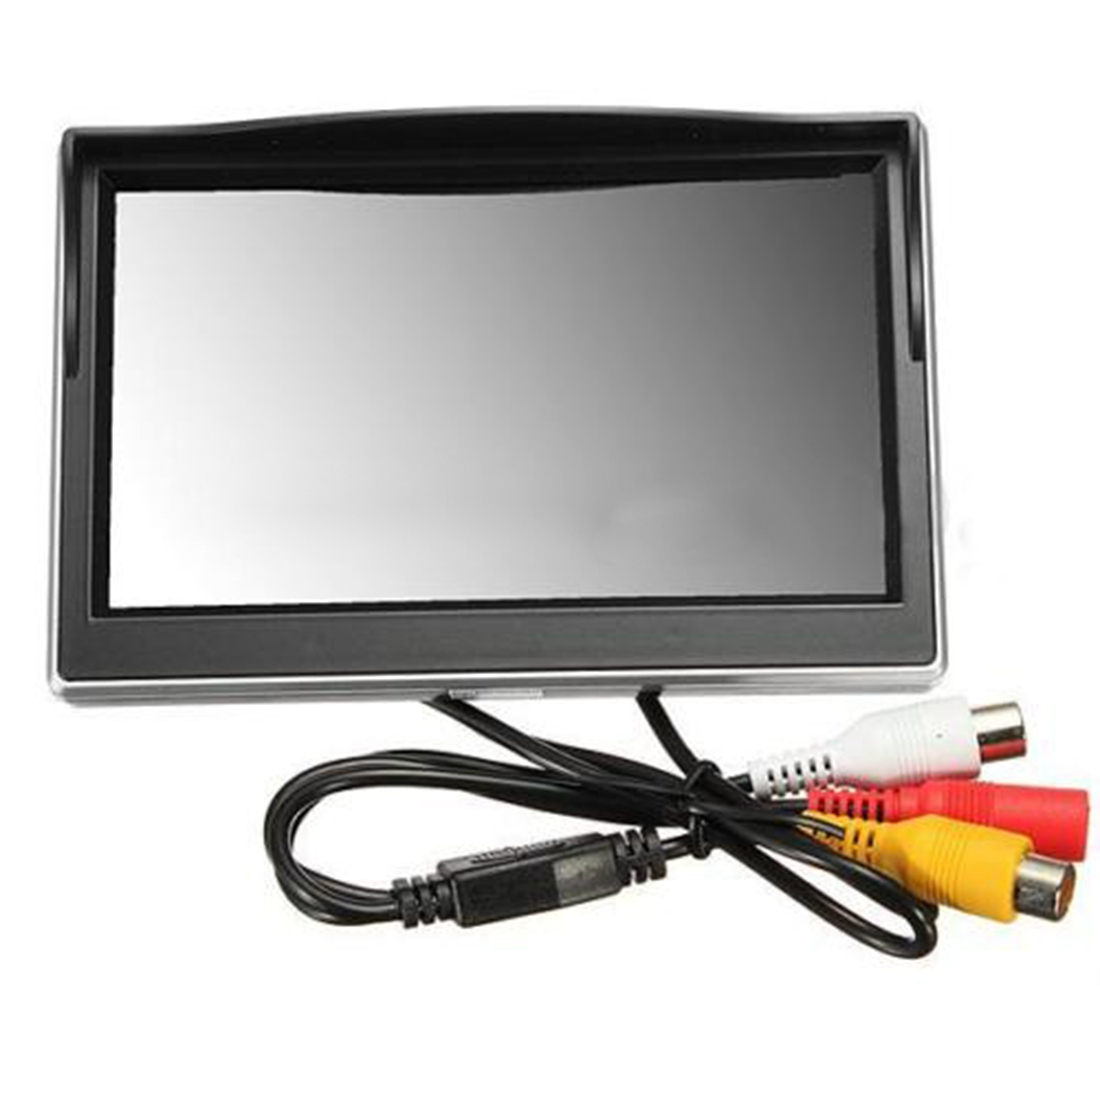 New 5 800*480 TFT LCD HD Screen Monitor for Car Rear Rearview Backup Camera